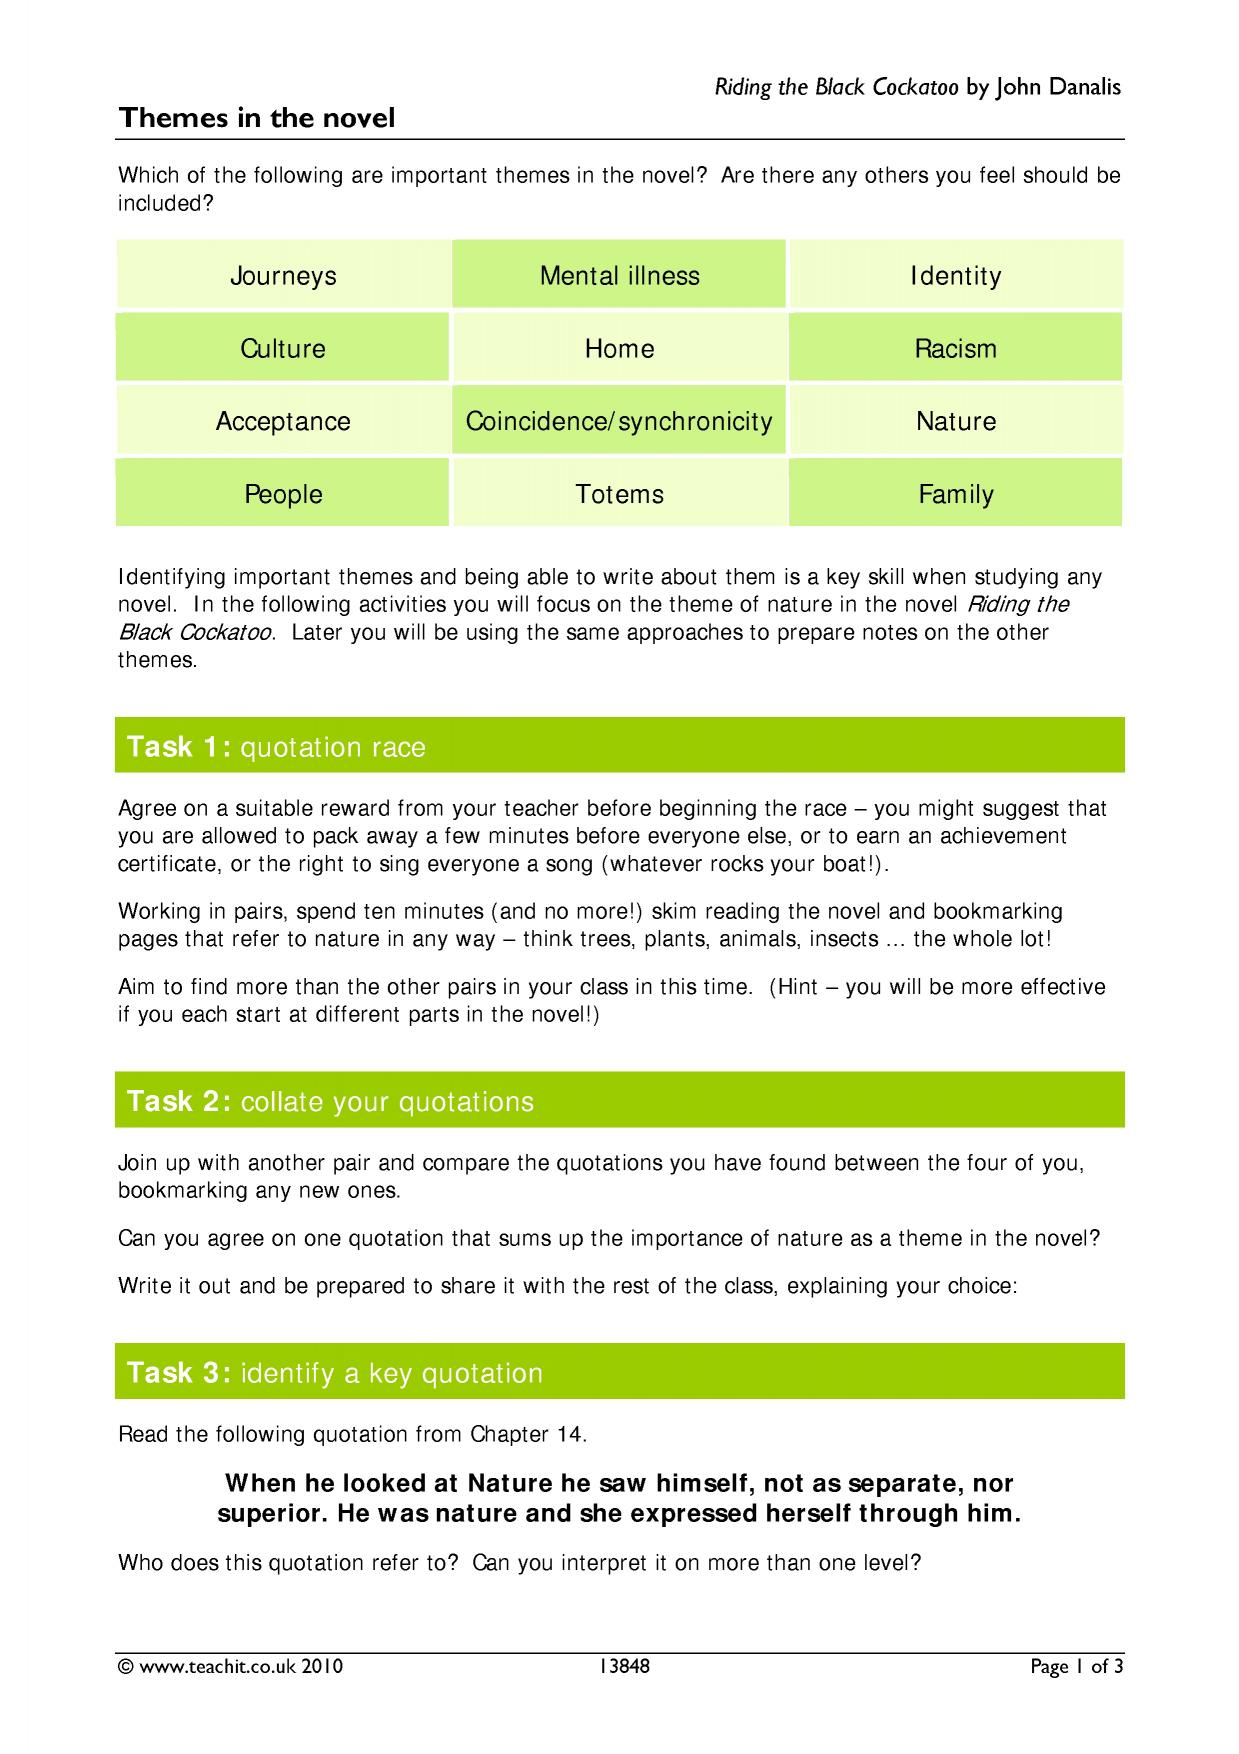 othello essays on themes Othello themes essay themes in othello jealousy is a major theme of the play the imagery surrounding jealousy makes it a monster which controls the characters.